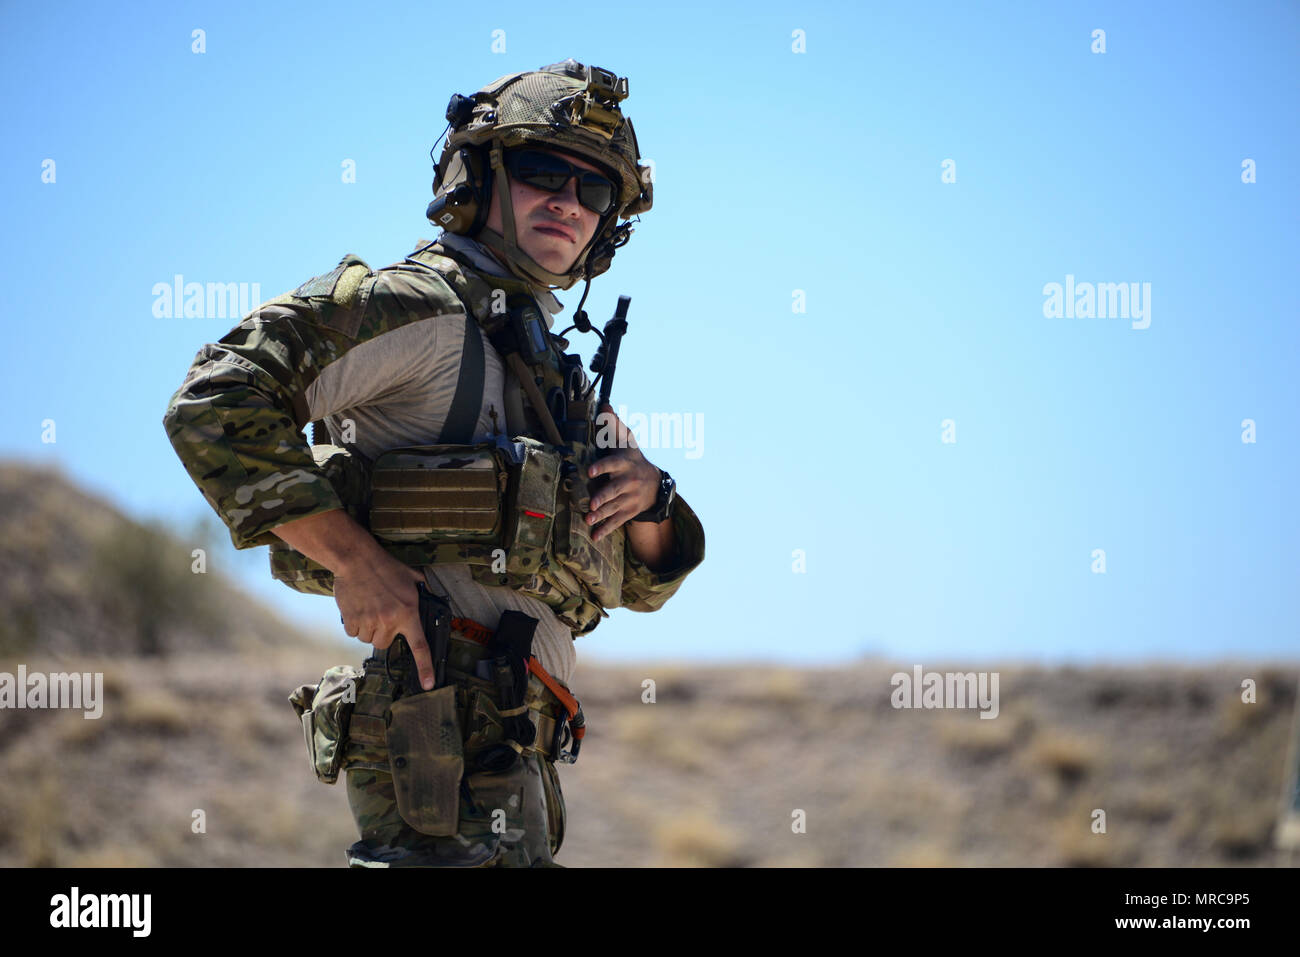 A U.S. Air Force pararescueman holsters his weapon during the Guardian Angel Mission Qualification Training course at Davis-Monthan Air Force Base, Ariz., May 17, 2017. The MQT is a 90 day GA Formal traning course that takes pararescuemen who have completed Air Education and Training Command schooling and helps them achieve their 5-level qualification. (U.S. Air Force photo by Airman 1st Class Nathan H. Barbour) - Stock Image